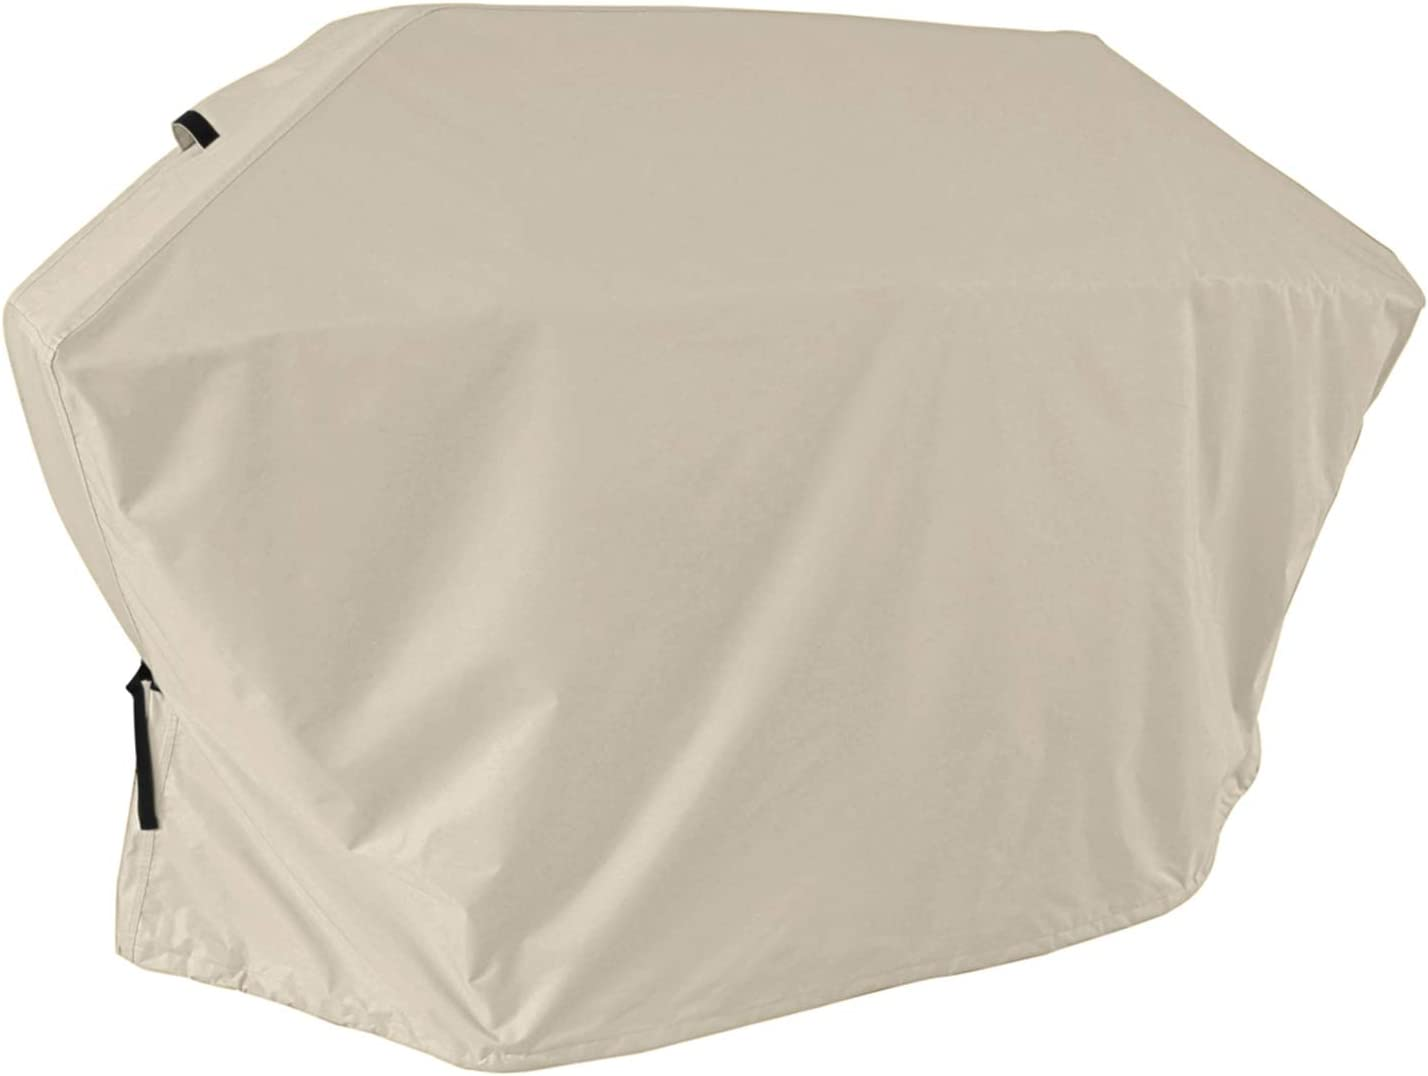 BBQ Grill Cover Gas Heavy Duty for Home Patio Garden-Storage Waterproof Outdoor